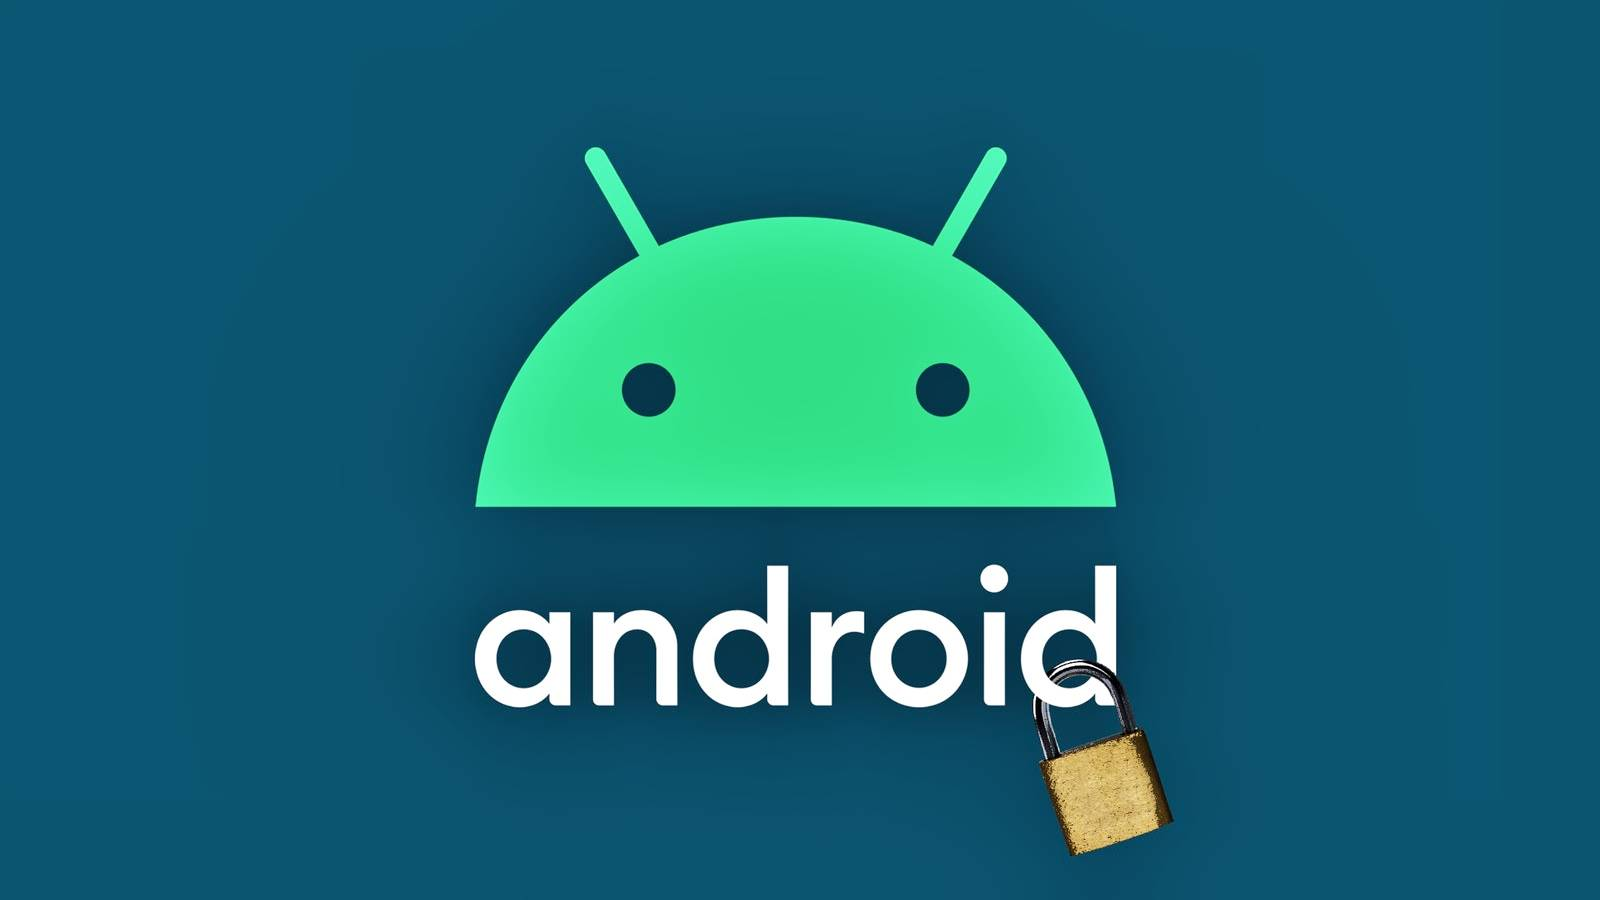 Android semnare